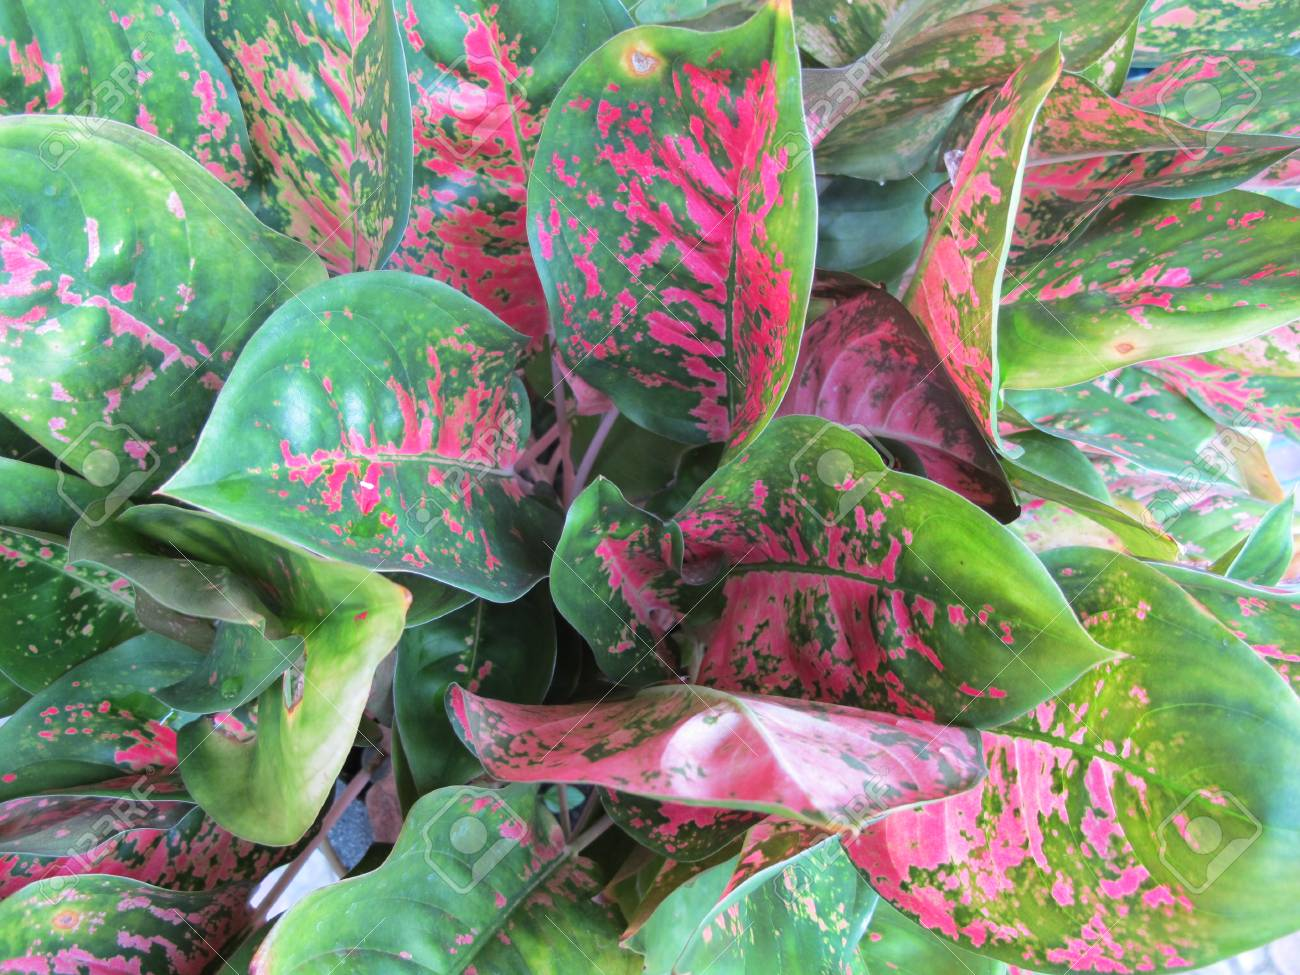 Tropical Plants Green Leaves With Red Spots Pattern Stock Photo Picture And Royalty Free Image Image 106055487